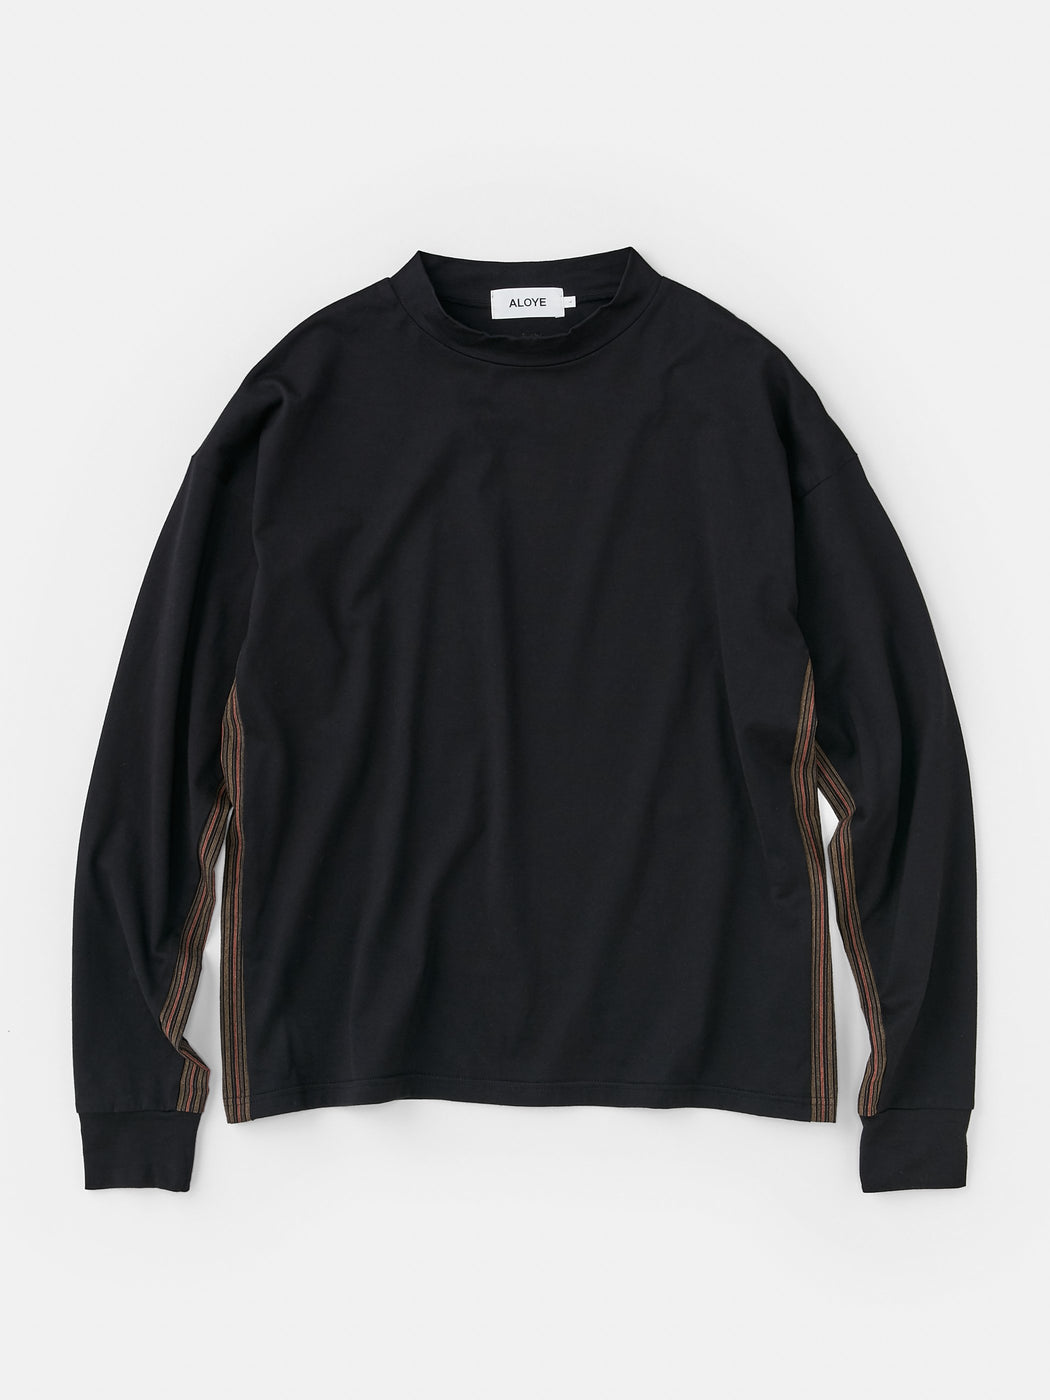 ALOYE Kamedajima Fabrics Men's High Neck Long Sleeve T-shirt Black-Kamedajima Stripe